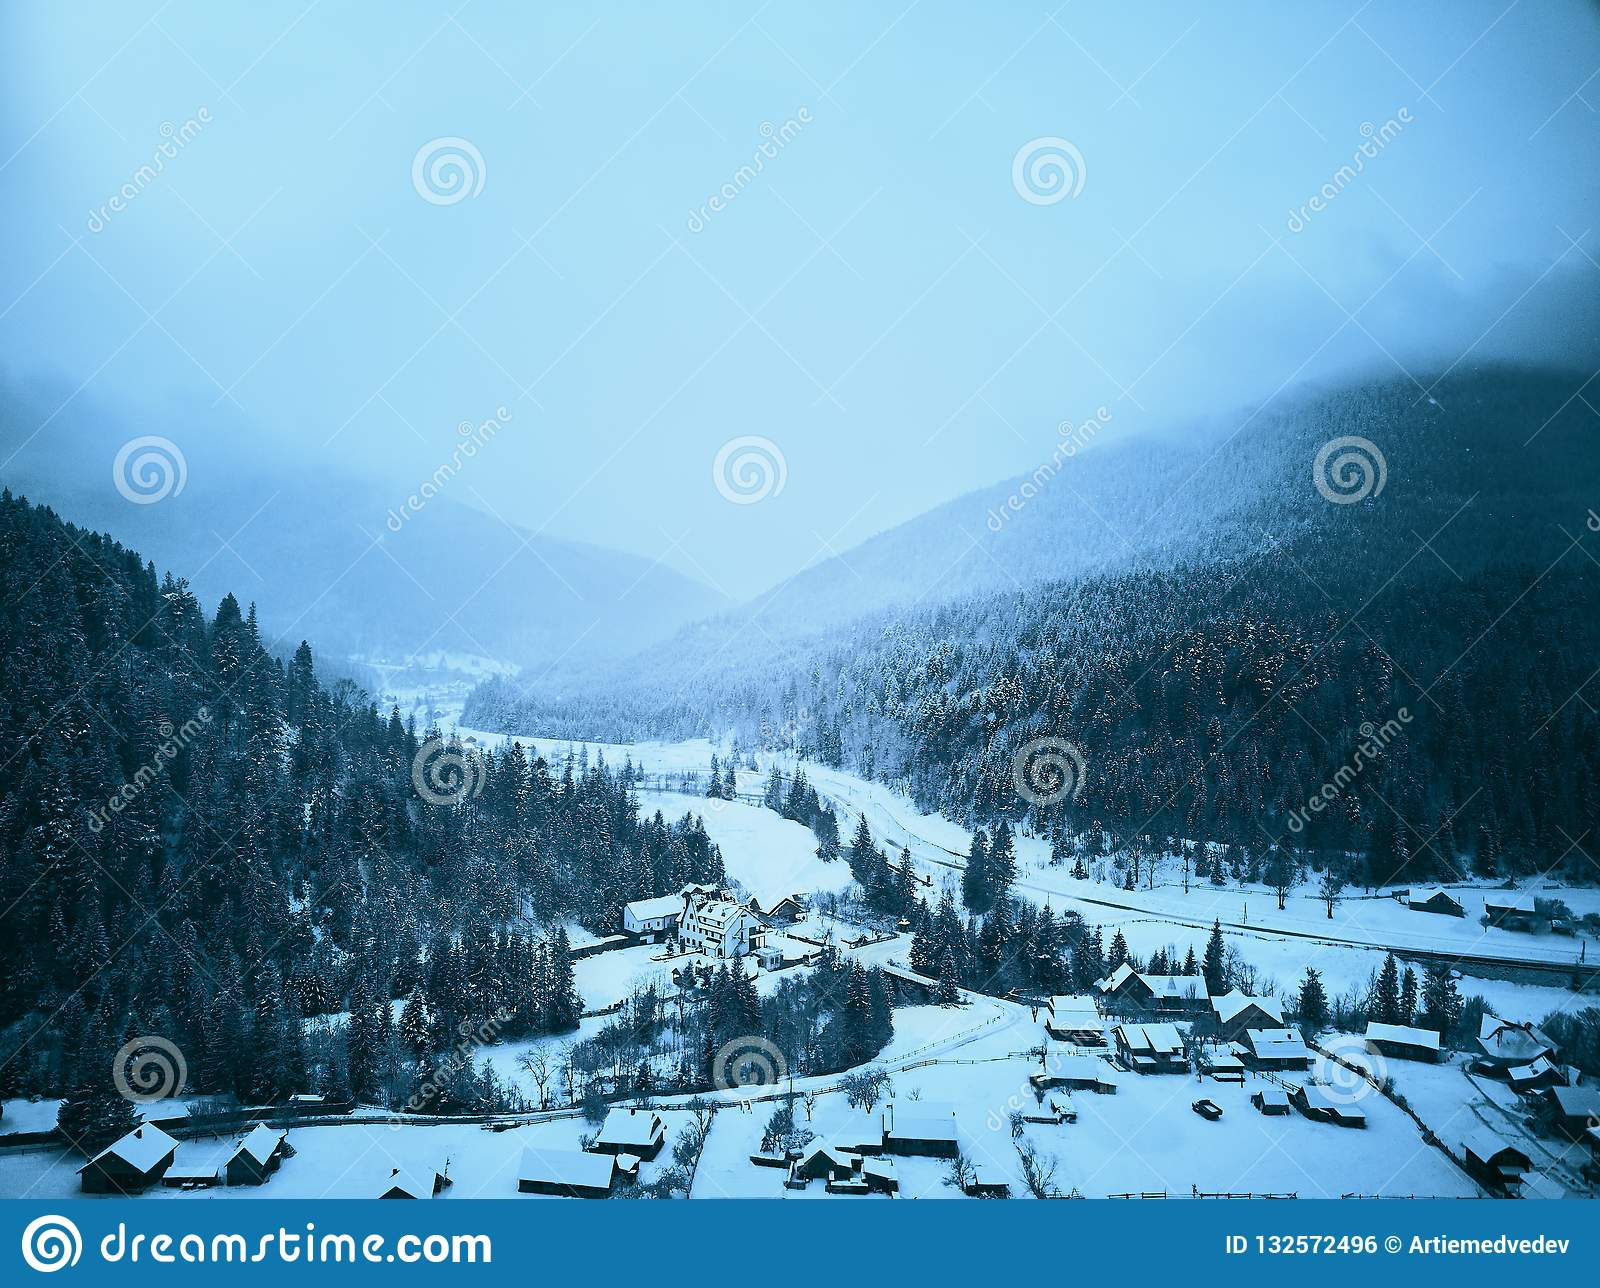 Aerial view of foggy countryside and houses in snowy valley. Hills and mountains with pine tree forest covered in snow